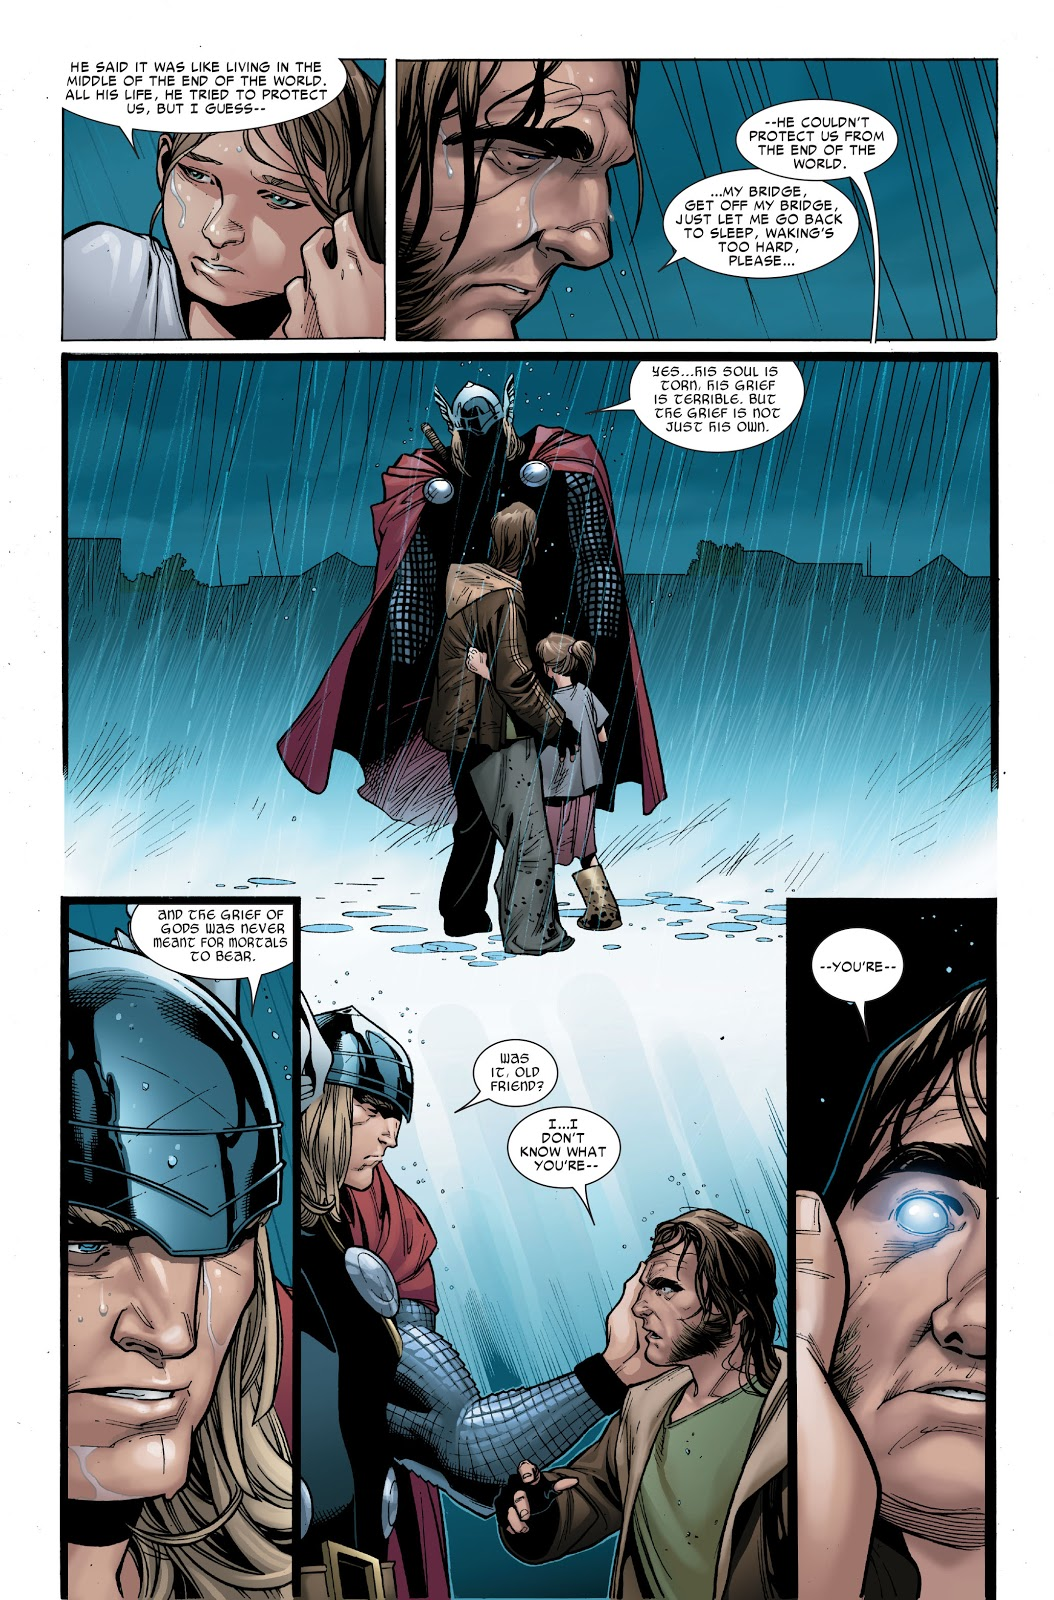 Thor Summons Heimdall From His Mortal Body